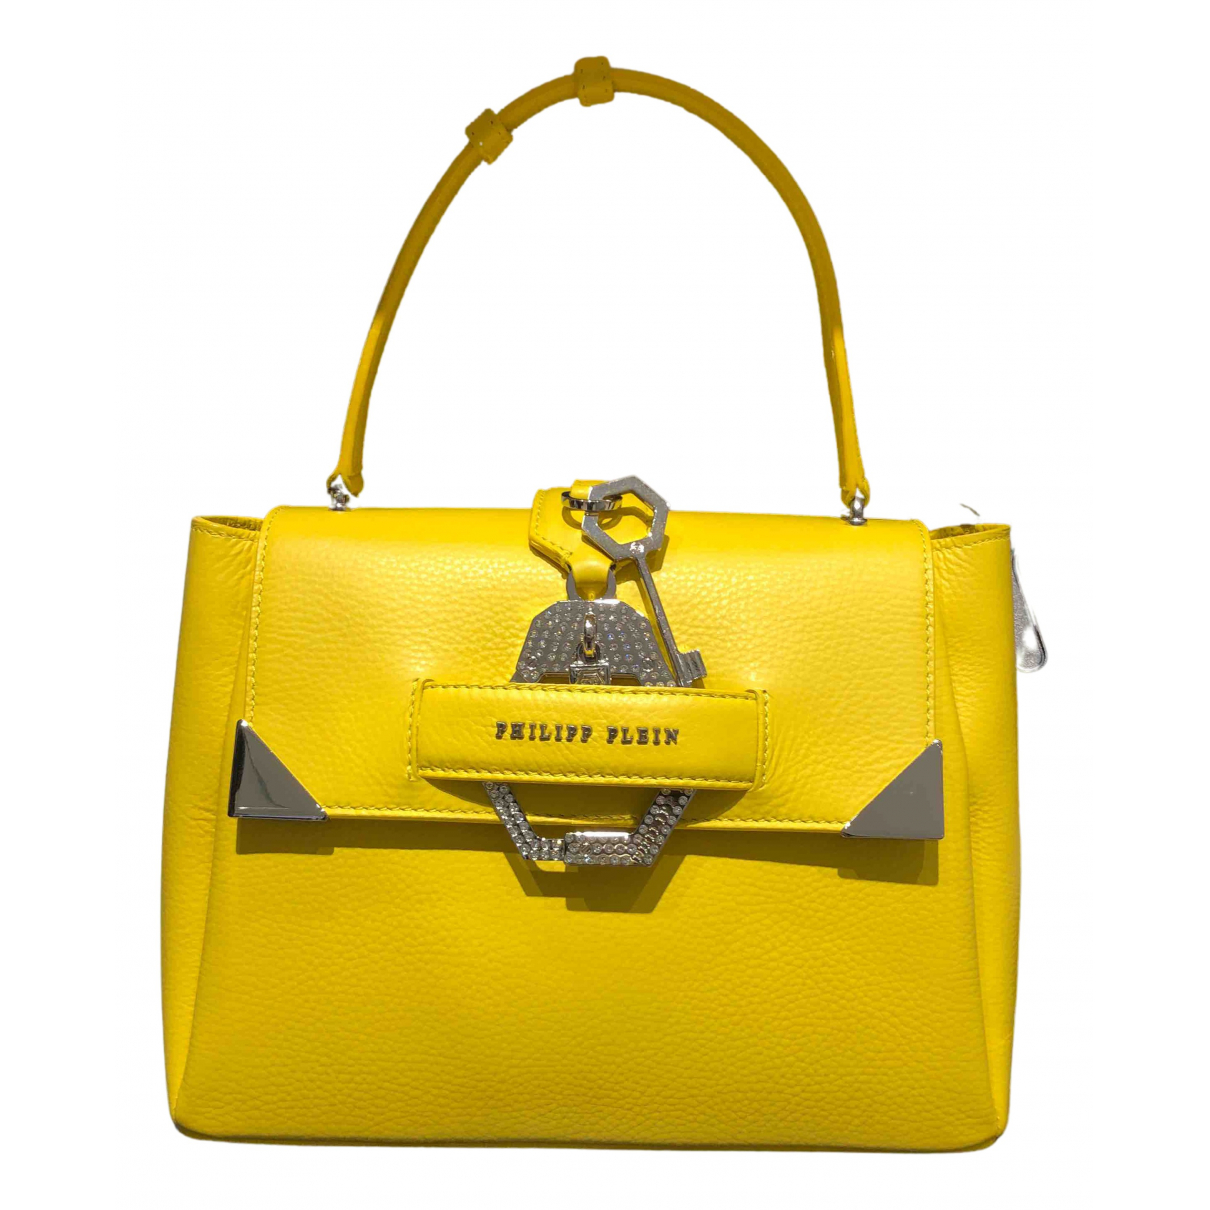 Philipp Plein \N Yellow Leather handbag for Women \N